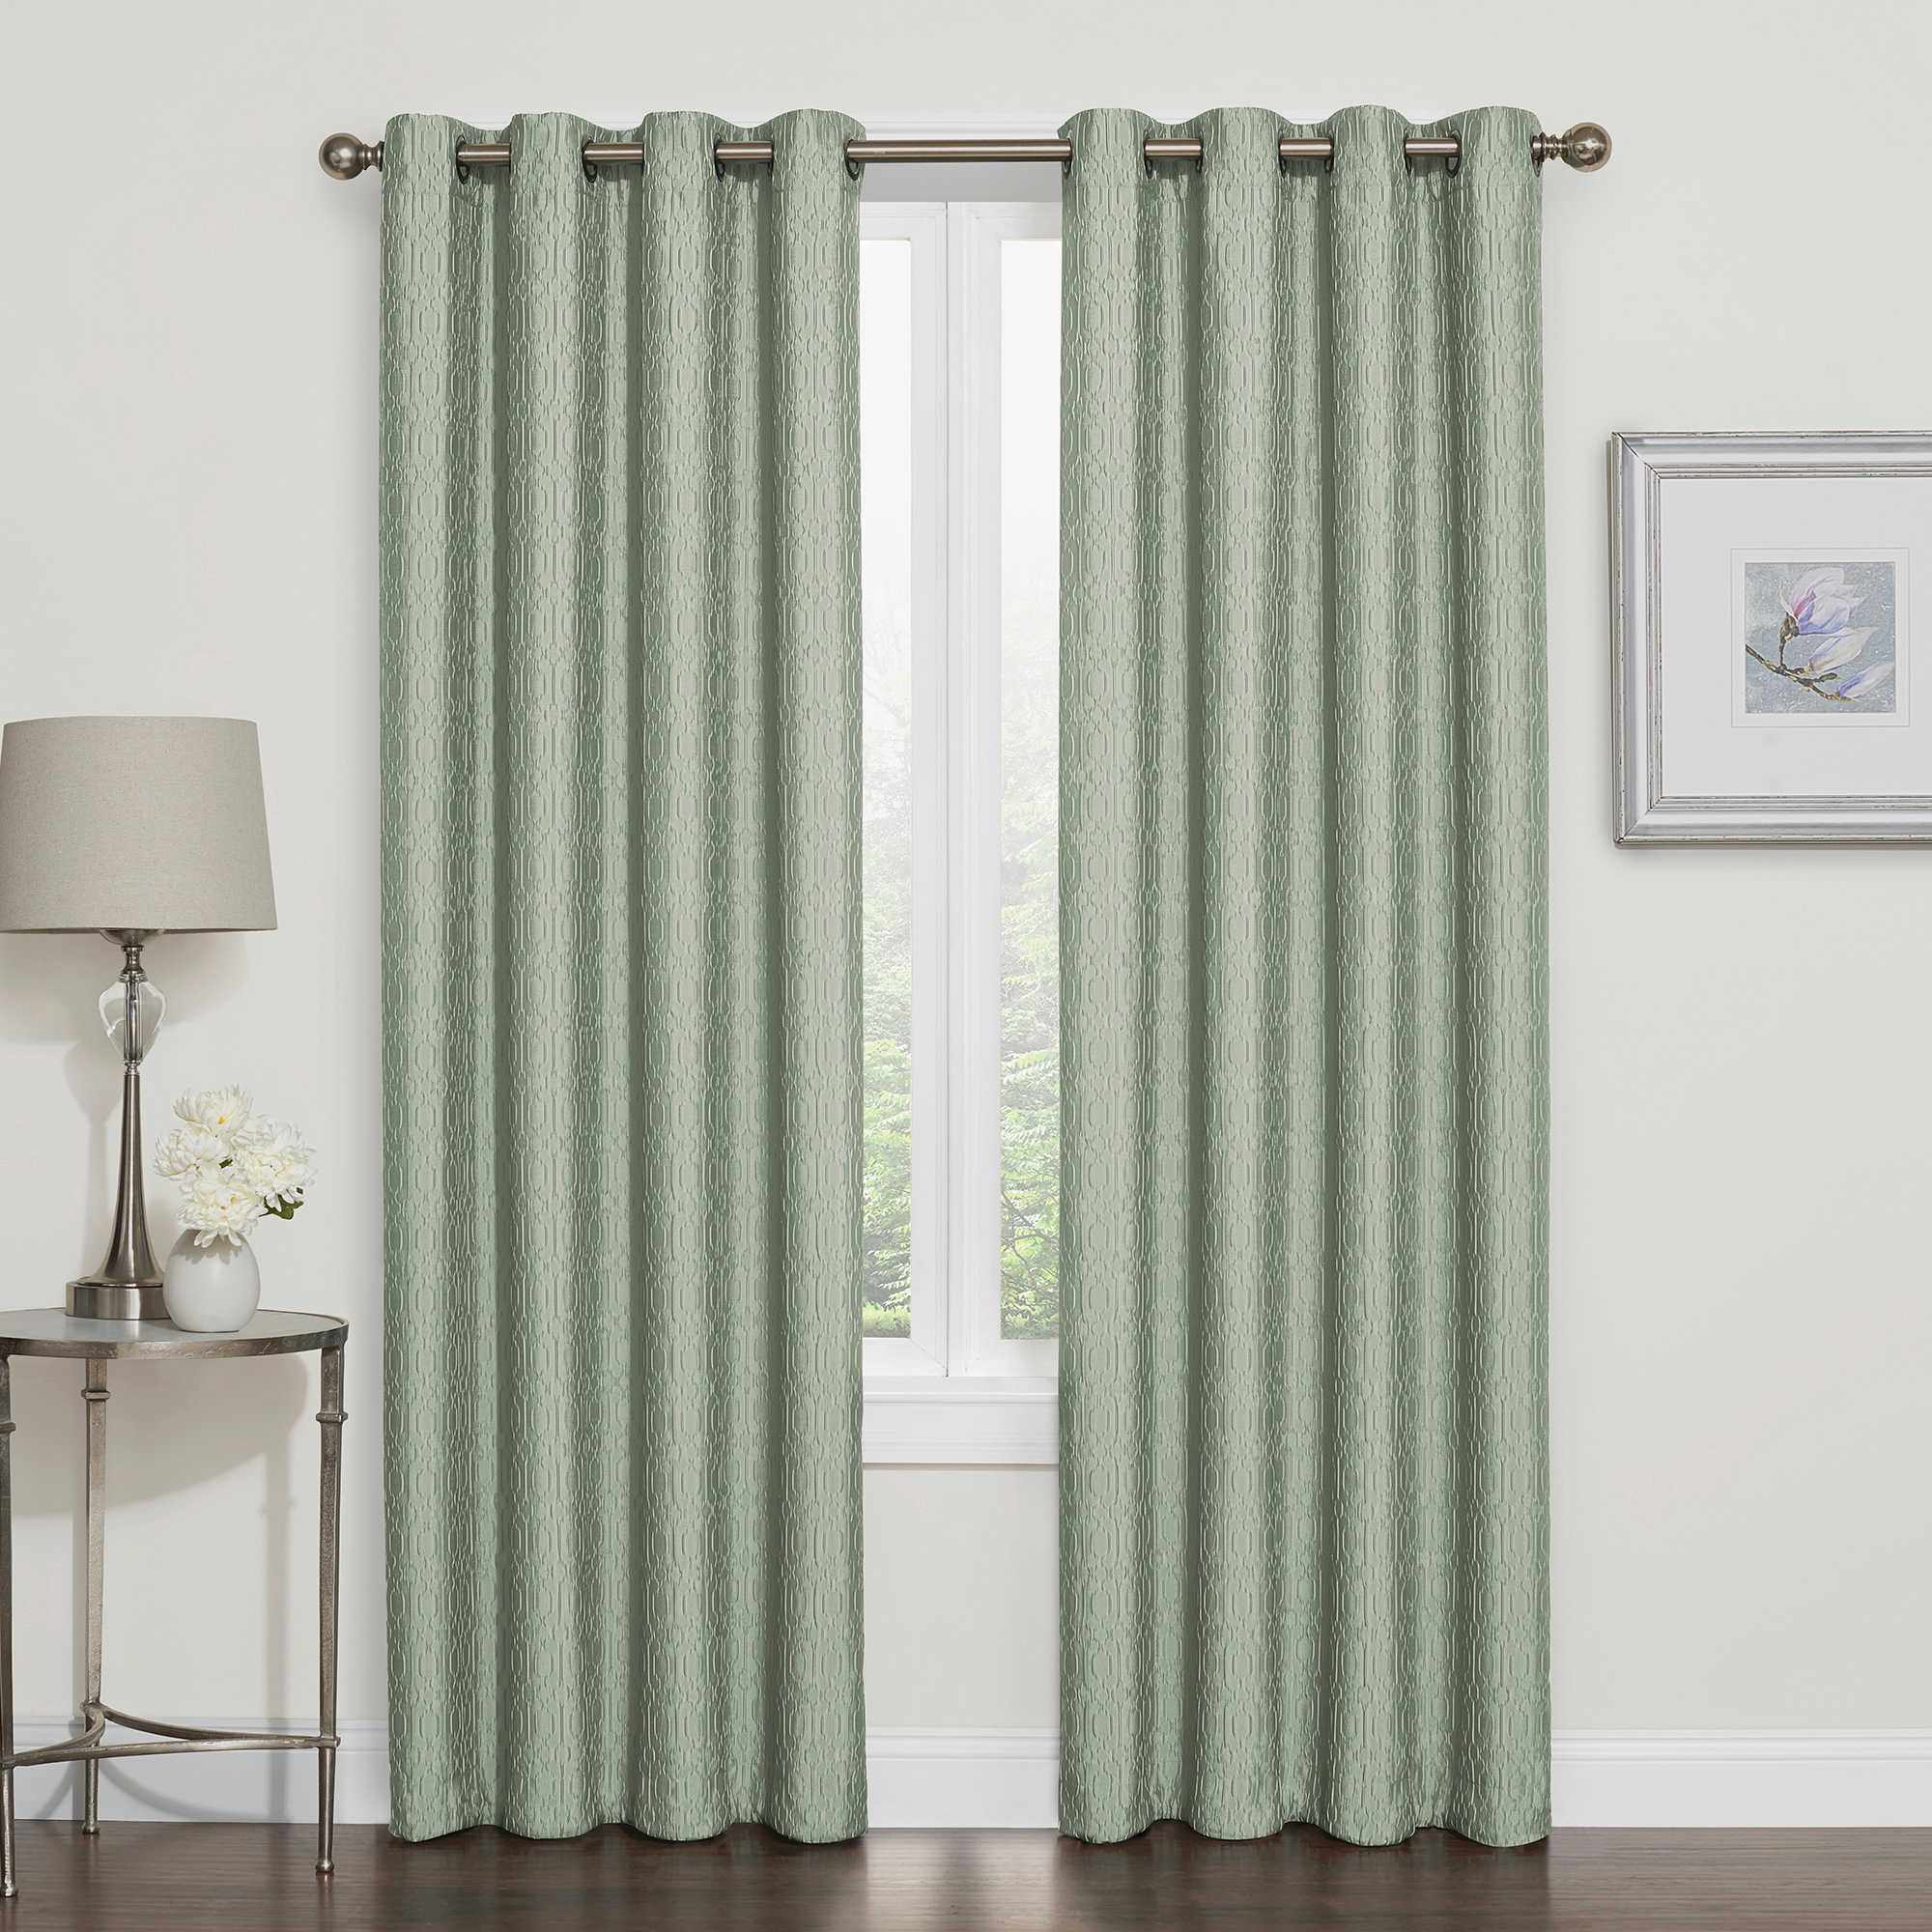 tie diy lace drapes that excellent from door dress dressing chair rooms in traditional voile ways chiffon or windows ideas and a top beautiful option are to for decorating with modern on fabric made at window take an you curtains white sheer